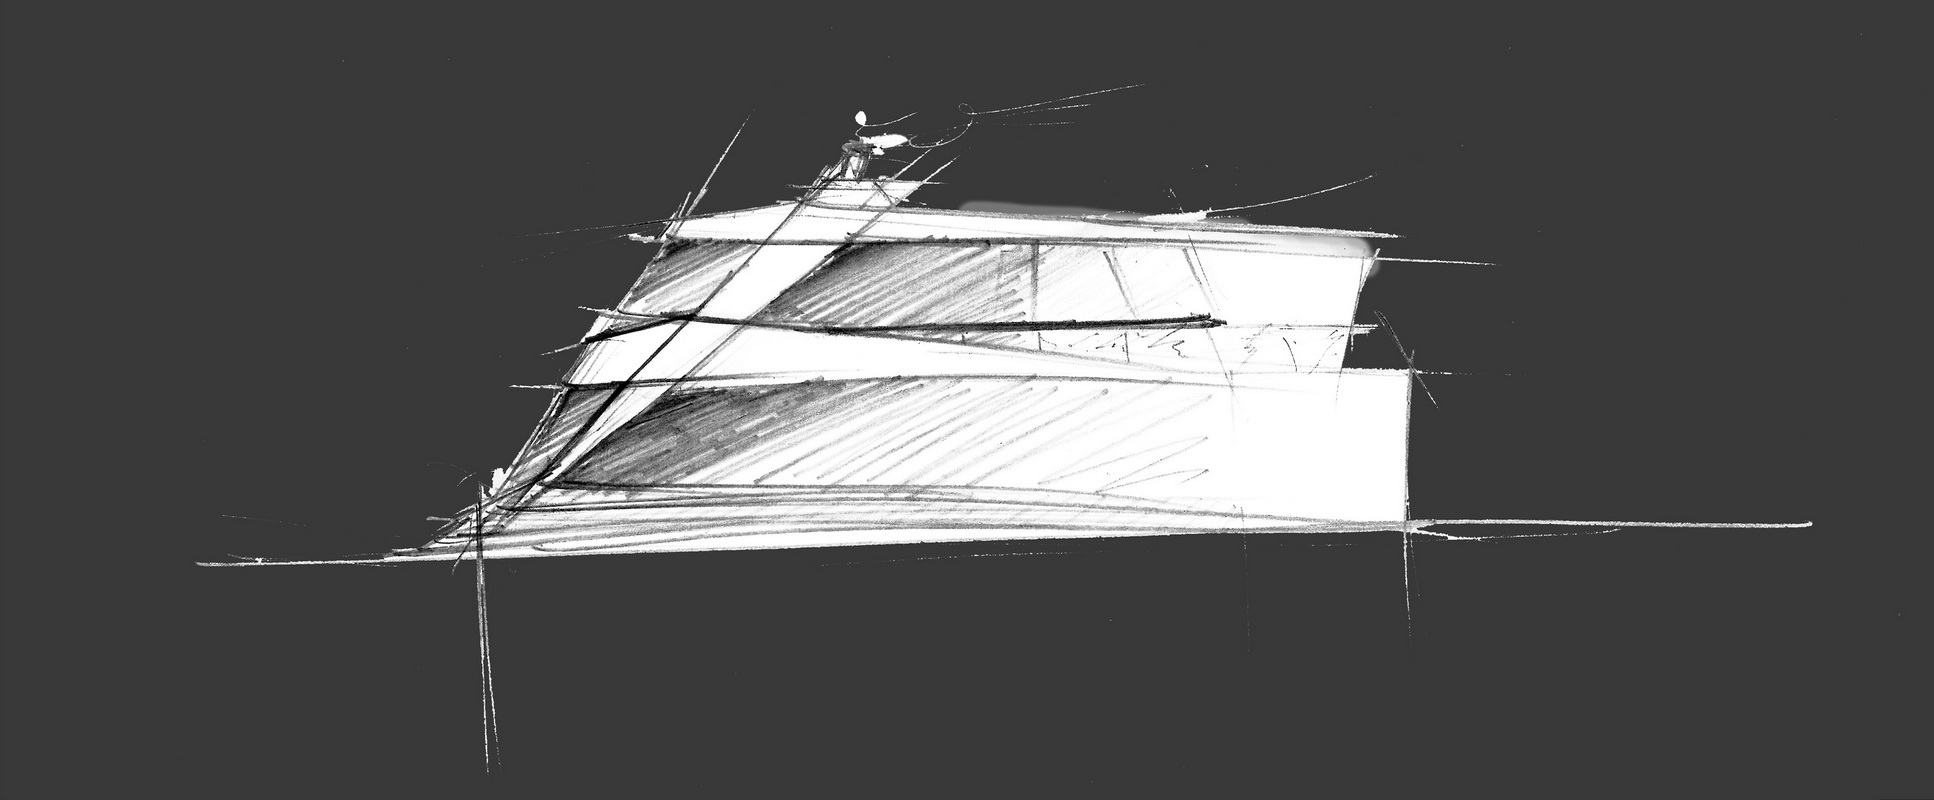 Roofyacht_Philipp Bruni Design_01.jpg